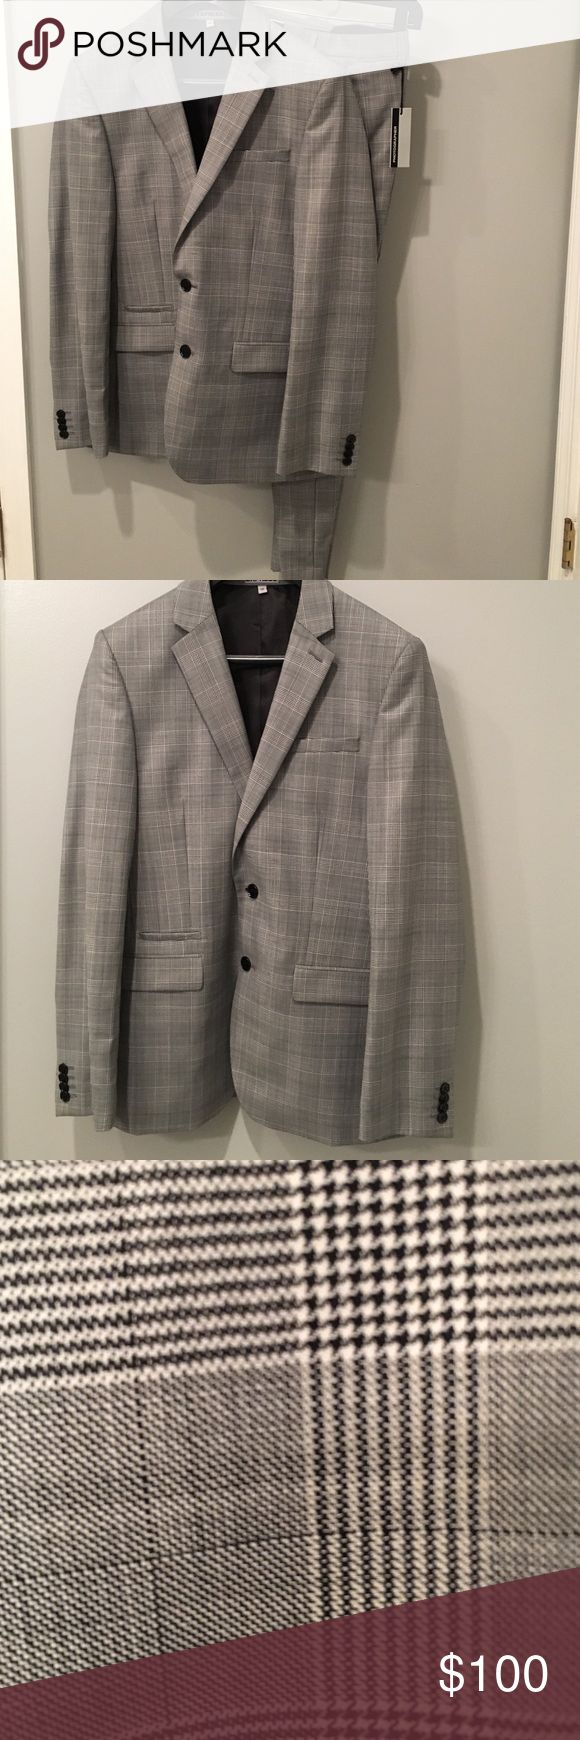 Express Men's suit NWT pants and NWOT jacket.                                  Houndstooth print suit.  Express Photographer fit.  Pants are 29x30 slim fit photographer pant.  Jacket is 38s.  Will separate pieces if sizes don't match up for you. Express Suits & Blazers Suits